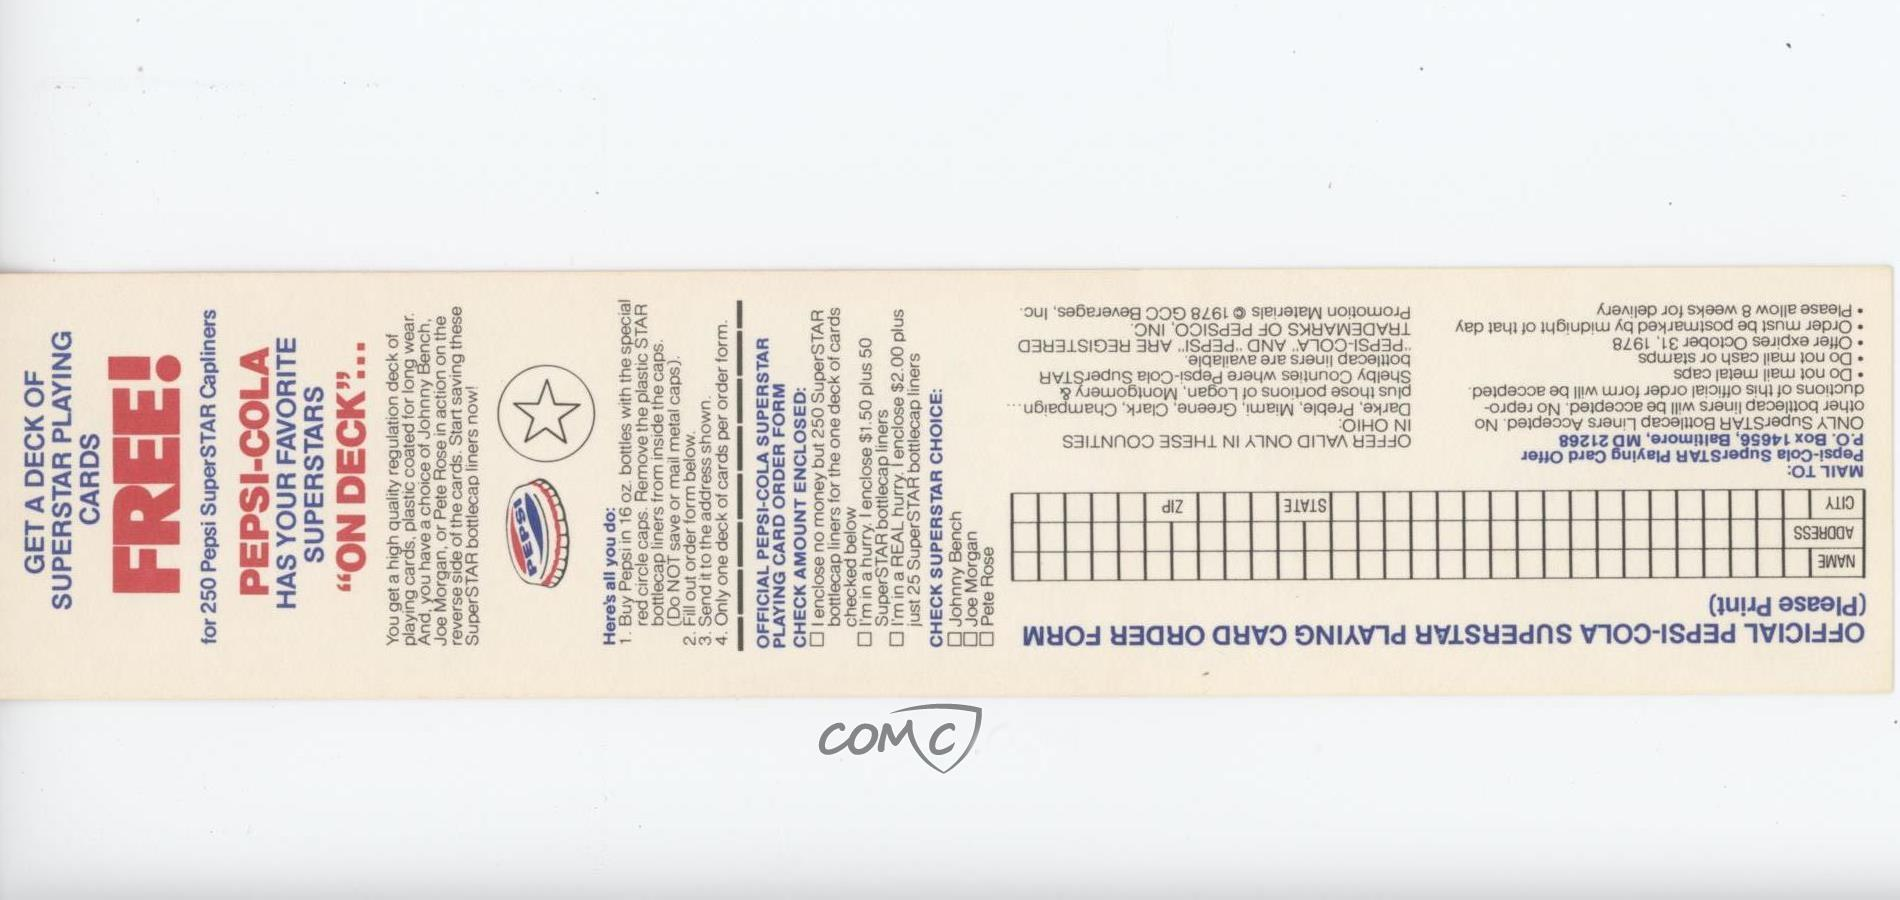 Details About 1978 Pepsi Cola Superstars With Tabs Rod Carew Minnesota Twins Baseball Card